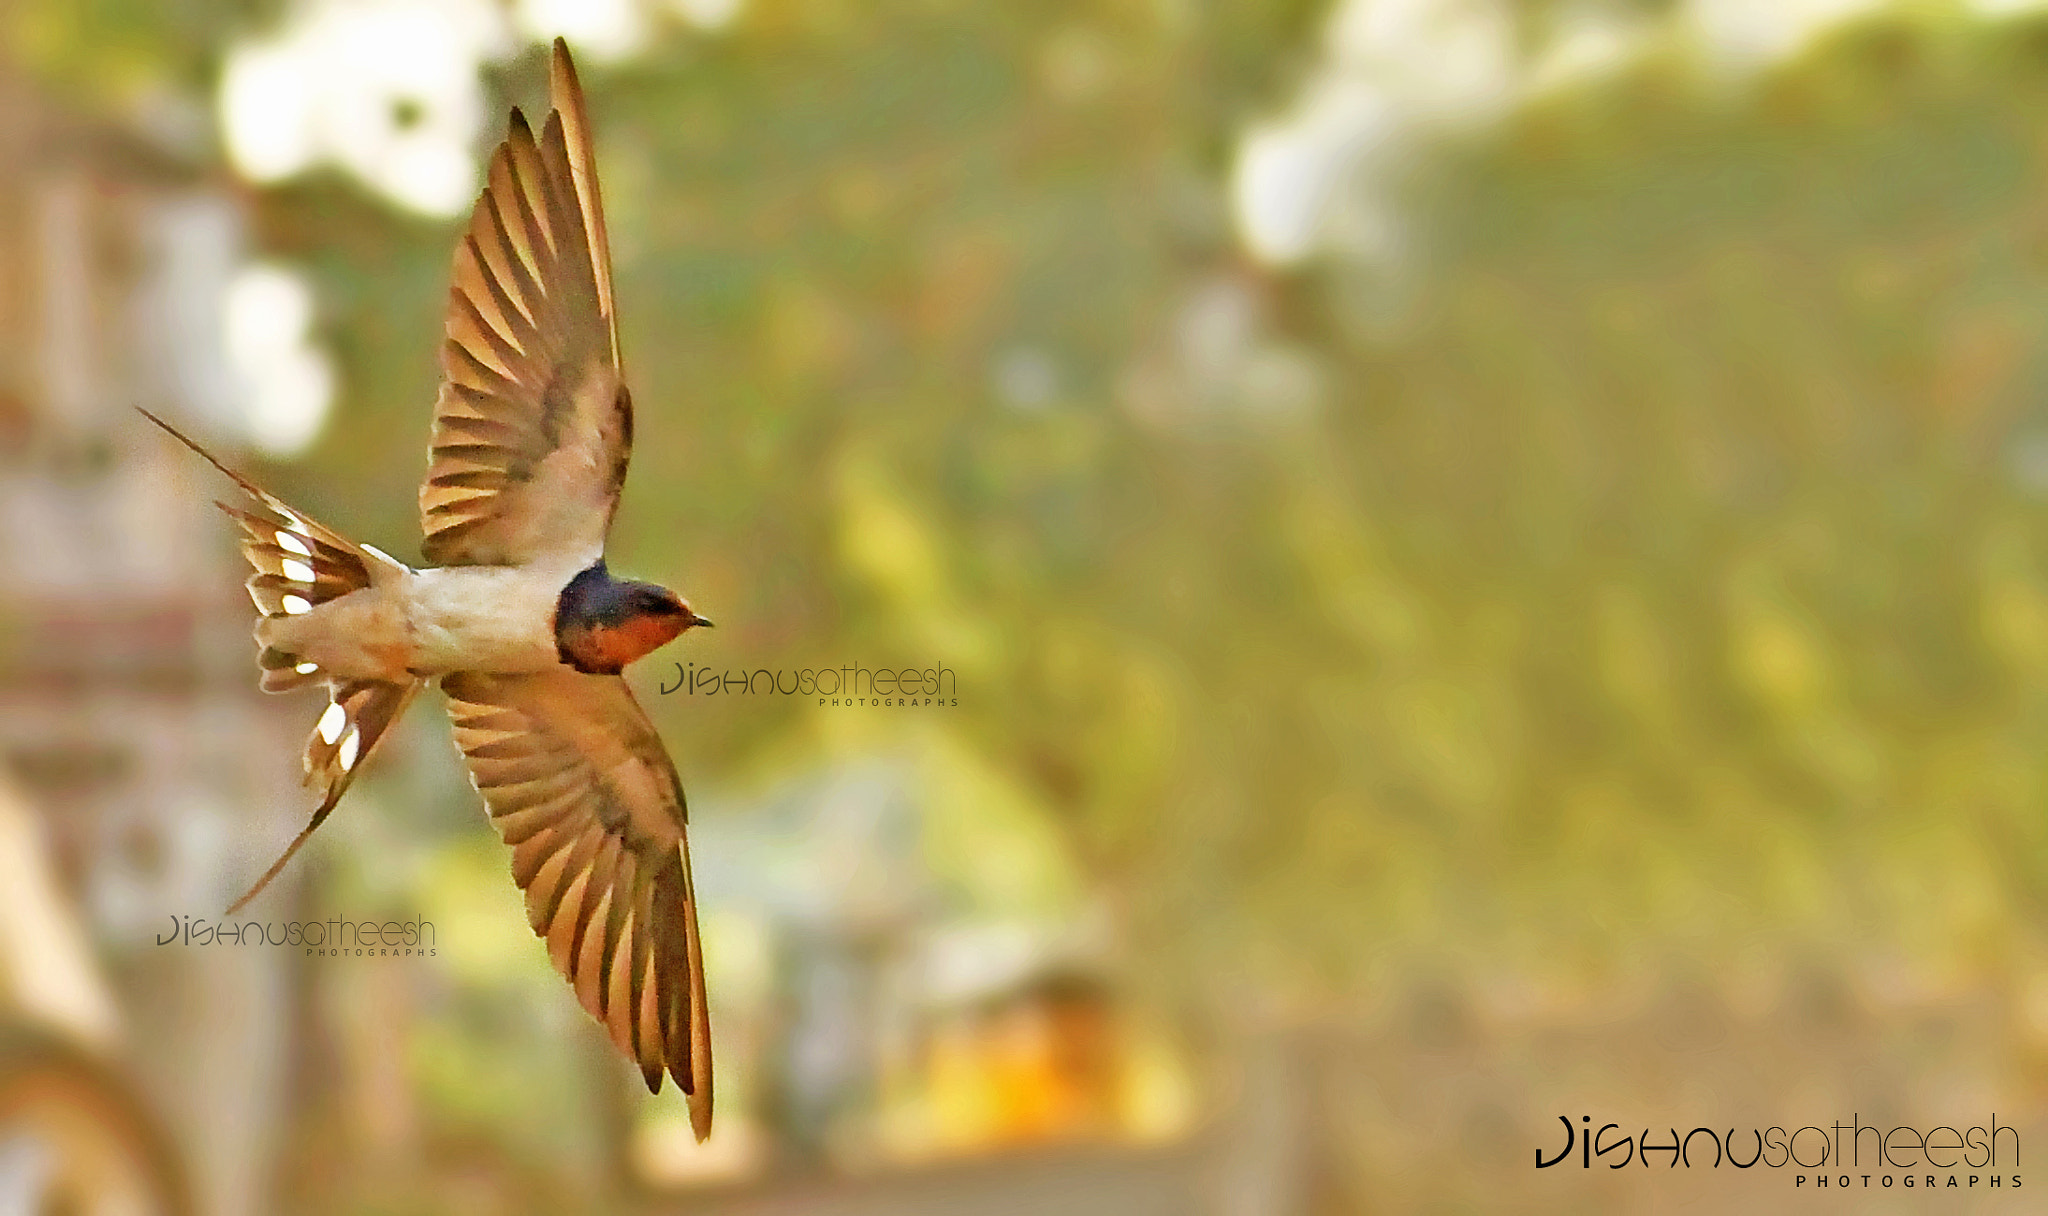 Photograph Barn Swallow in flight by Jishnu Satheesh Babu on 500px